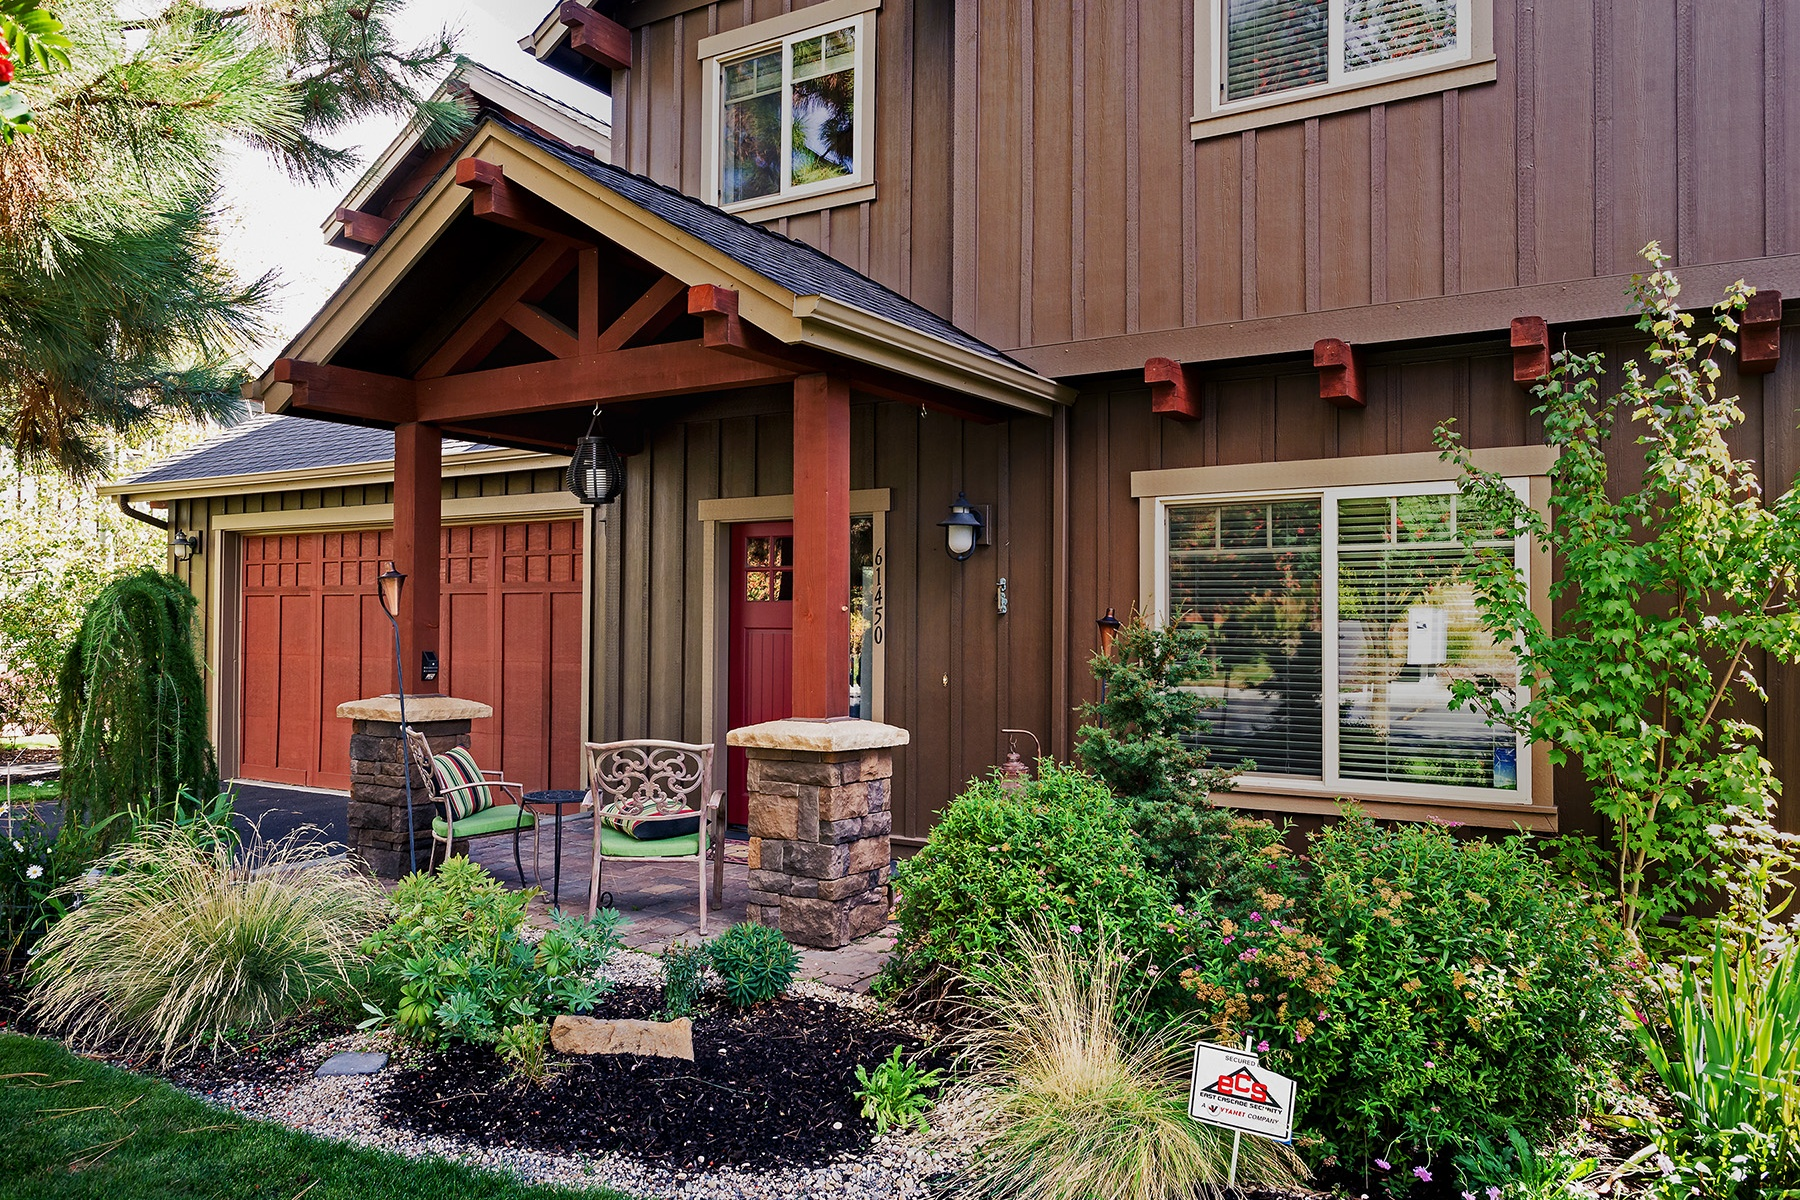 Single Family Home for Sale at 61450 Linton Loop, BEND Bend, Oregon, 97702 United States